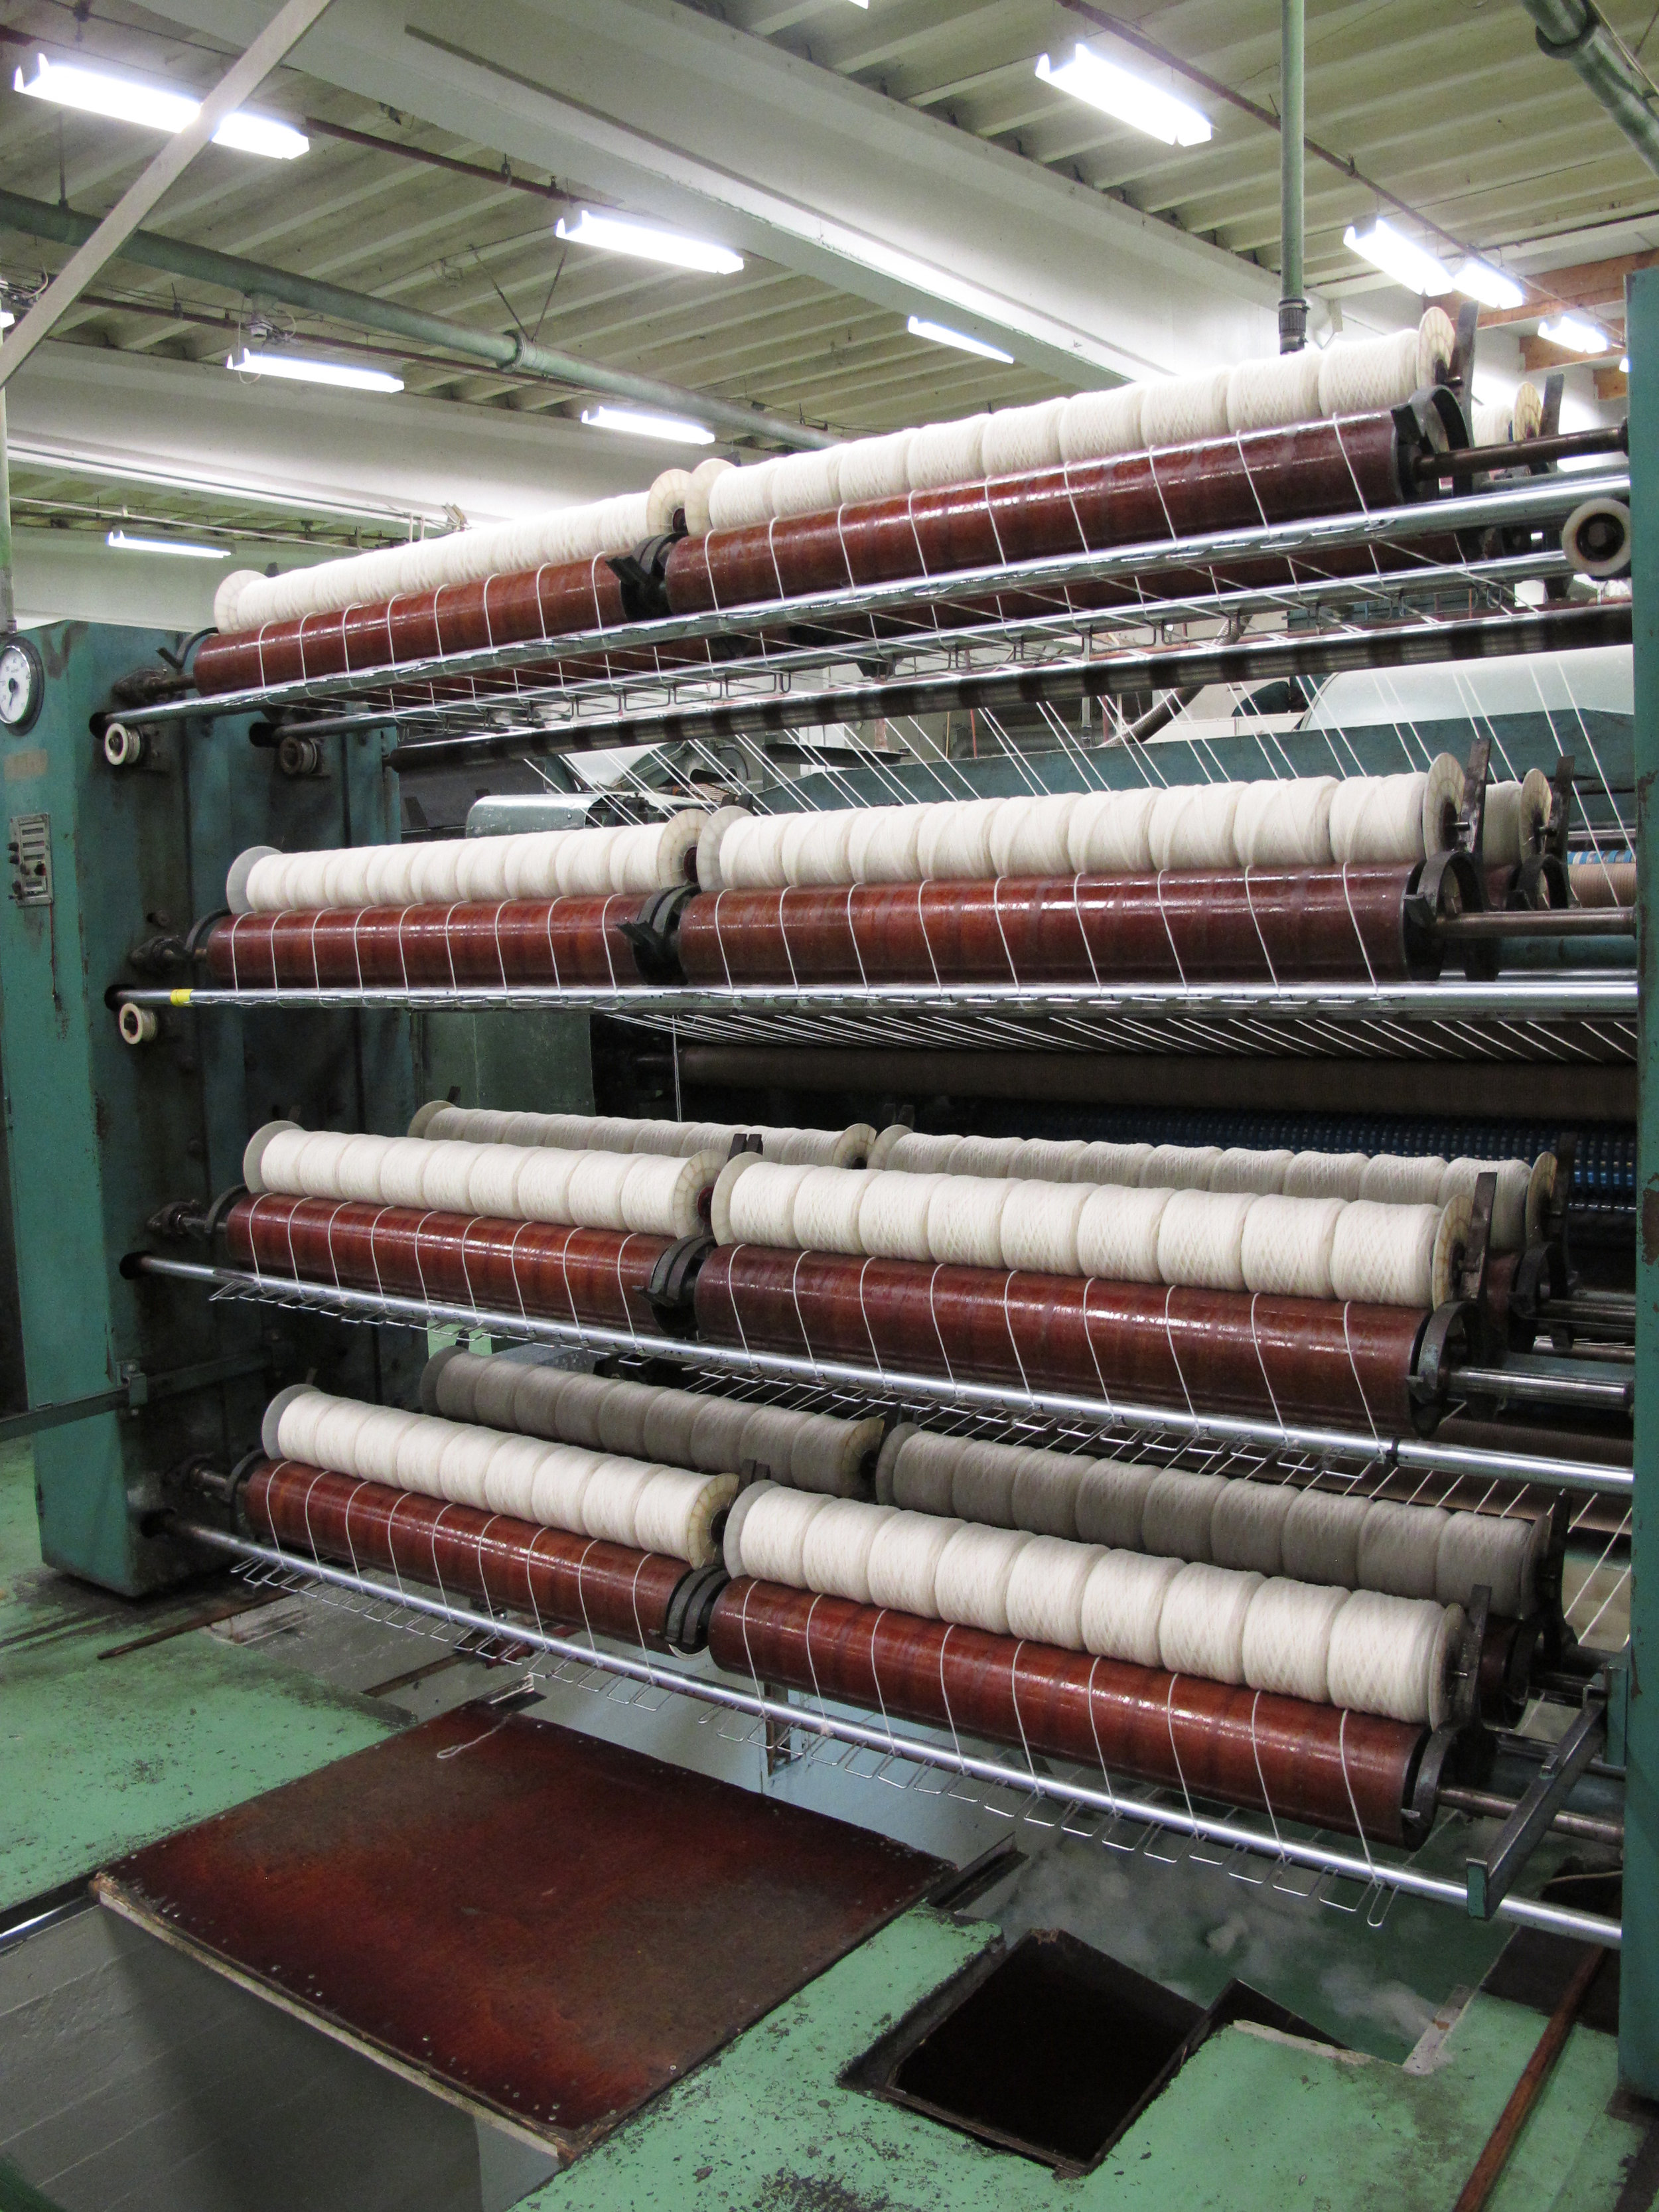 Making the threads before spinning and plying - this stage is what's known as plötulopi